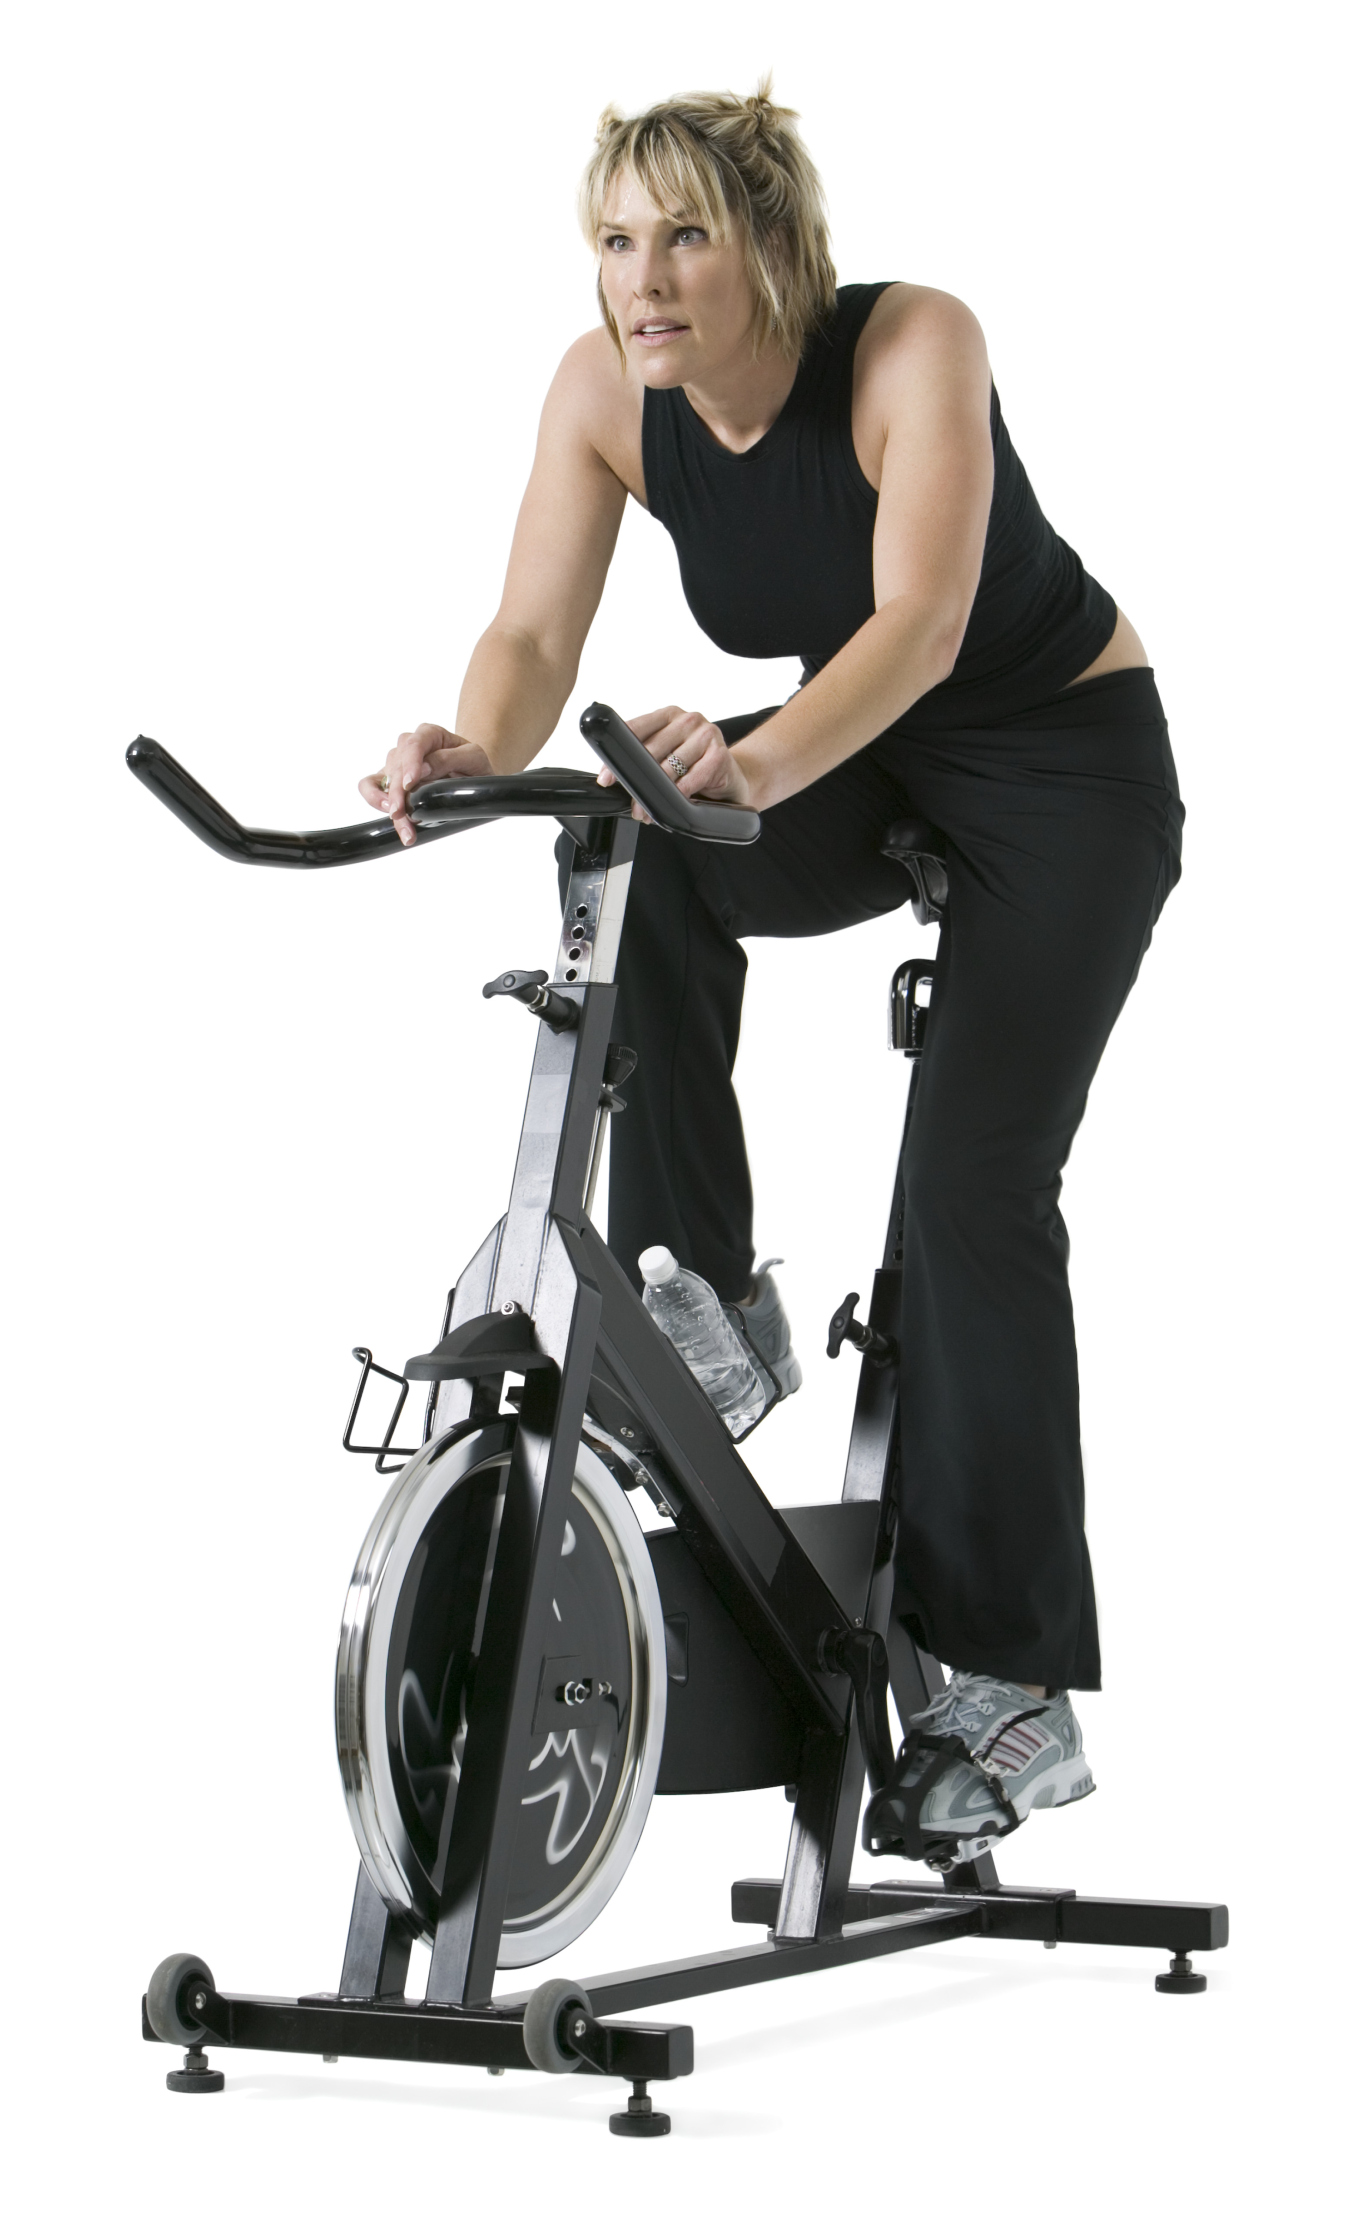 Do Exercise Bikes Slim Your Legs Or Make You Bulk Up